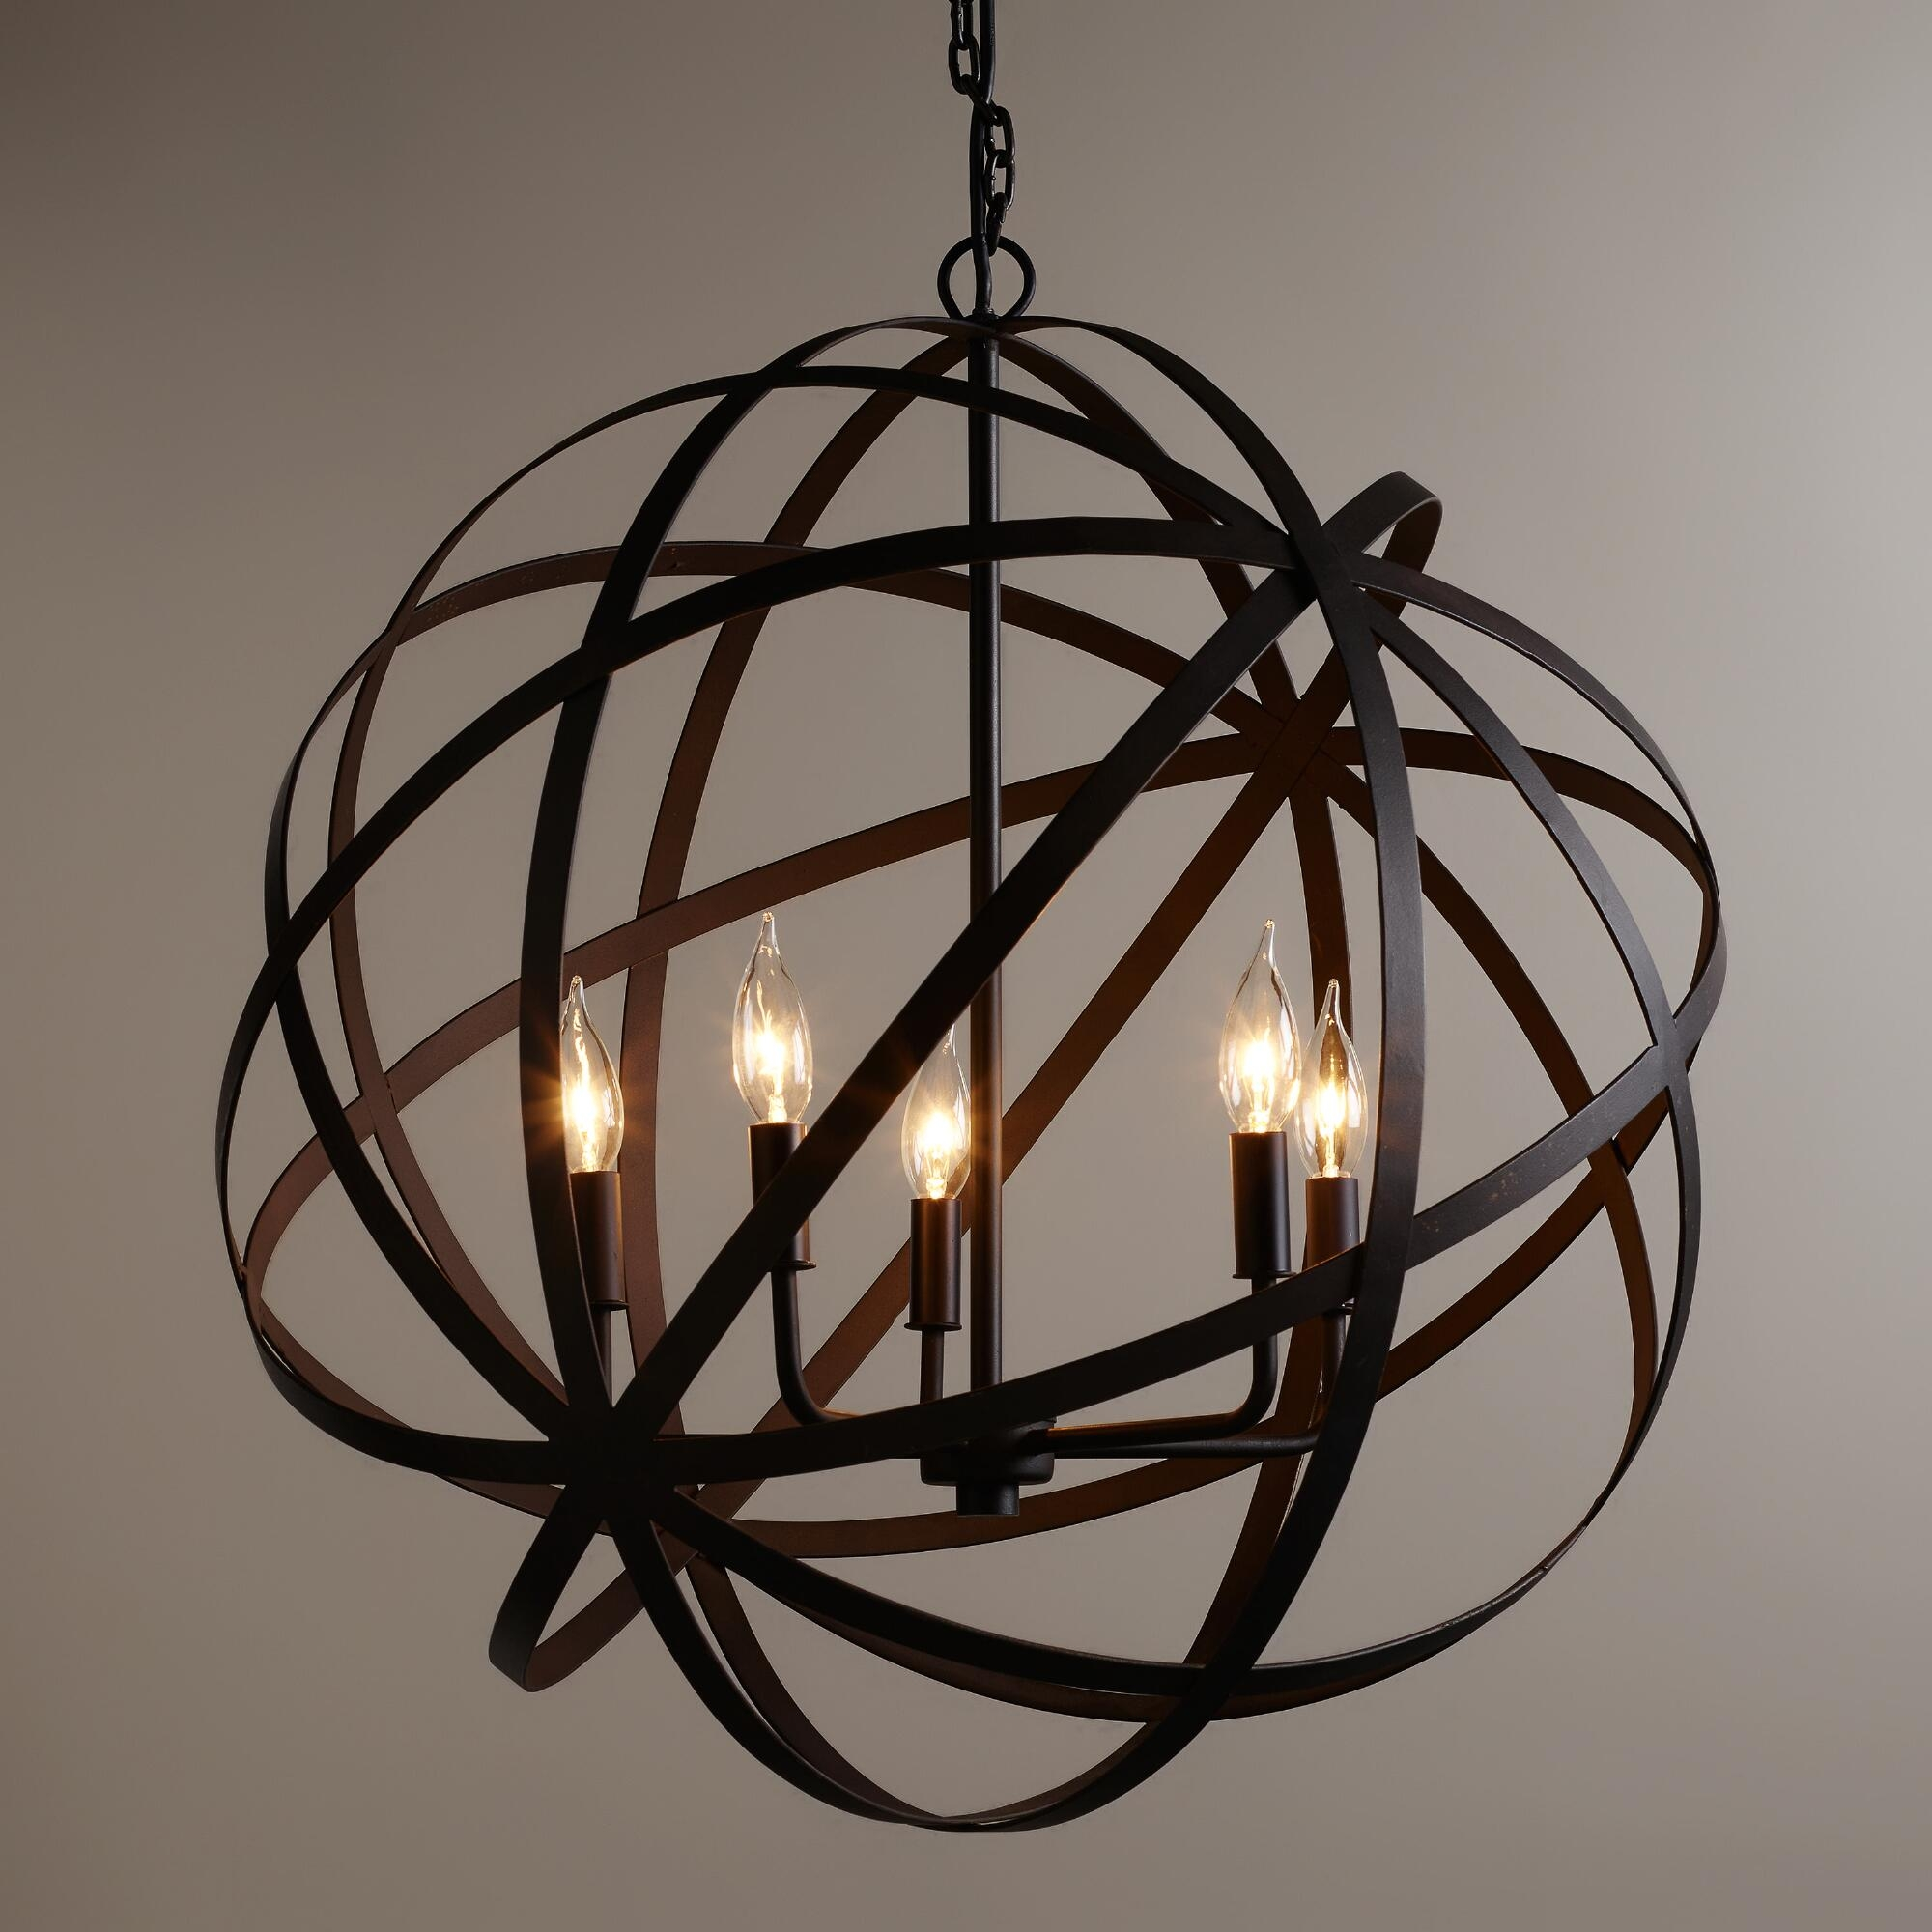 Accessories Home Interior Design And Decor With Sphere Chandelier Regarding Metal Sphere Chandelier (Image 1 of 15)